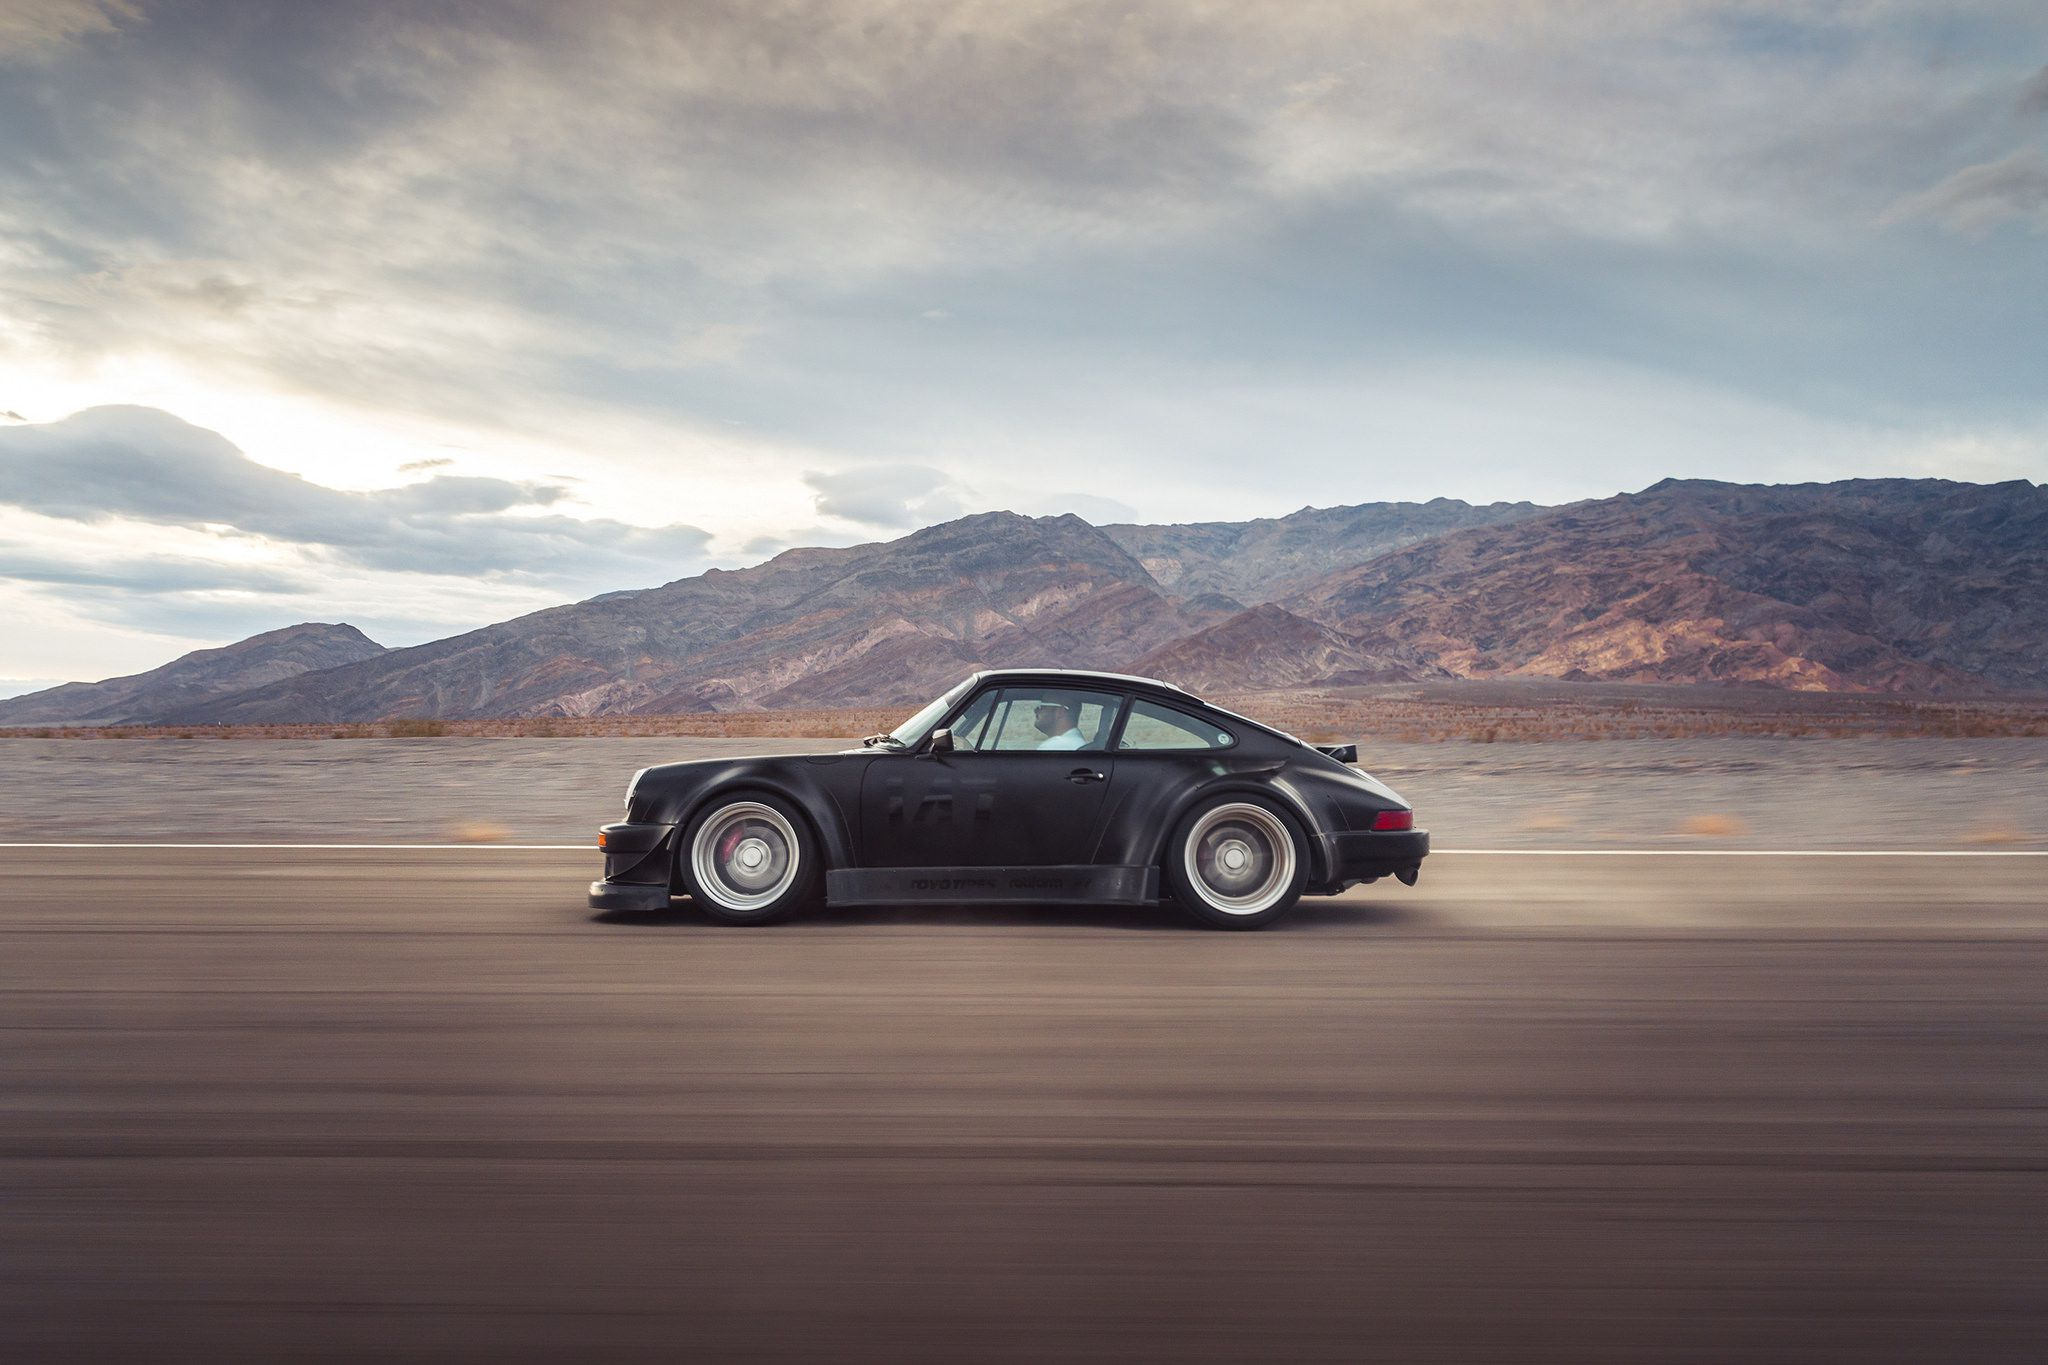 Black widebody sport car on Rotiform MLW wheels - RWB Porsche 911 (993) HD image